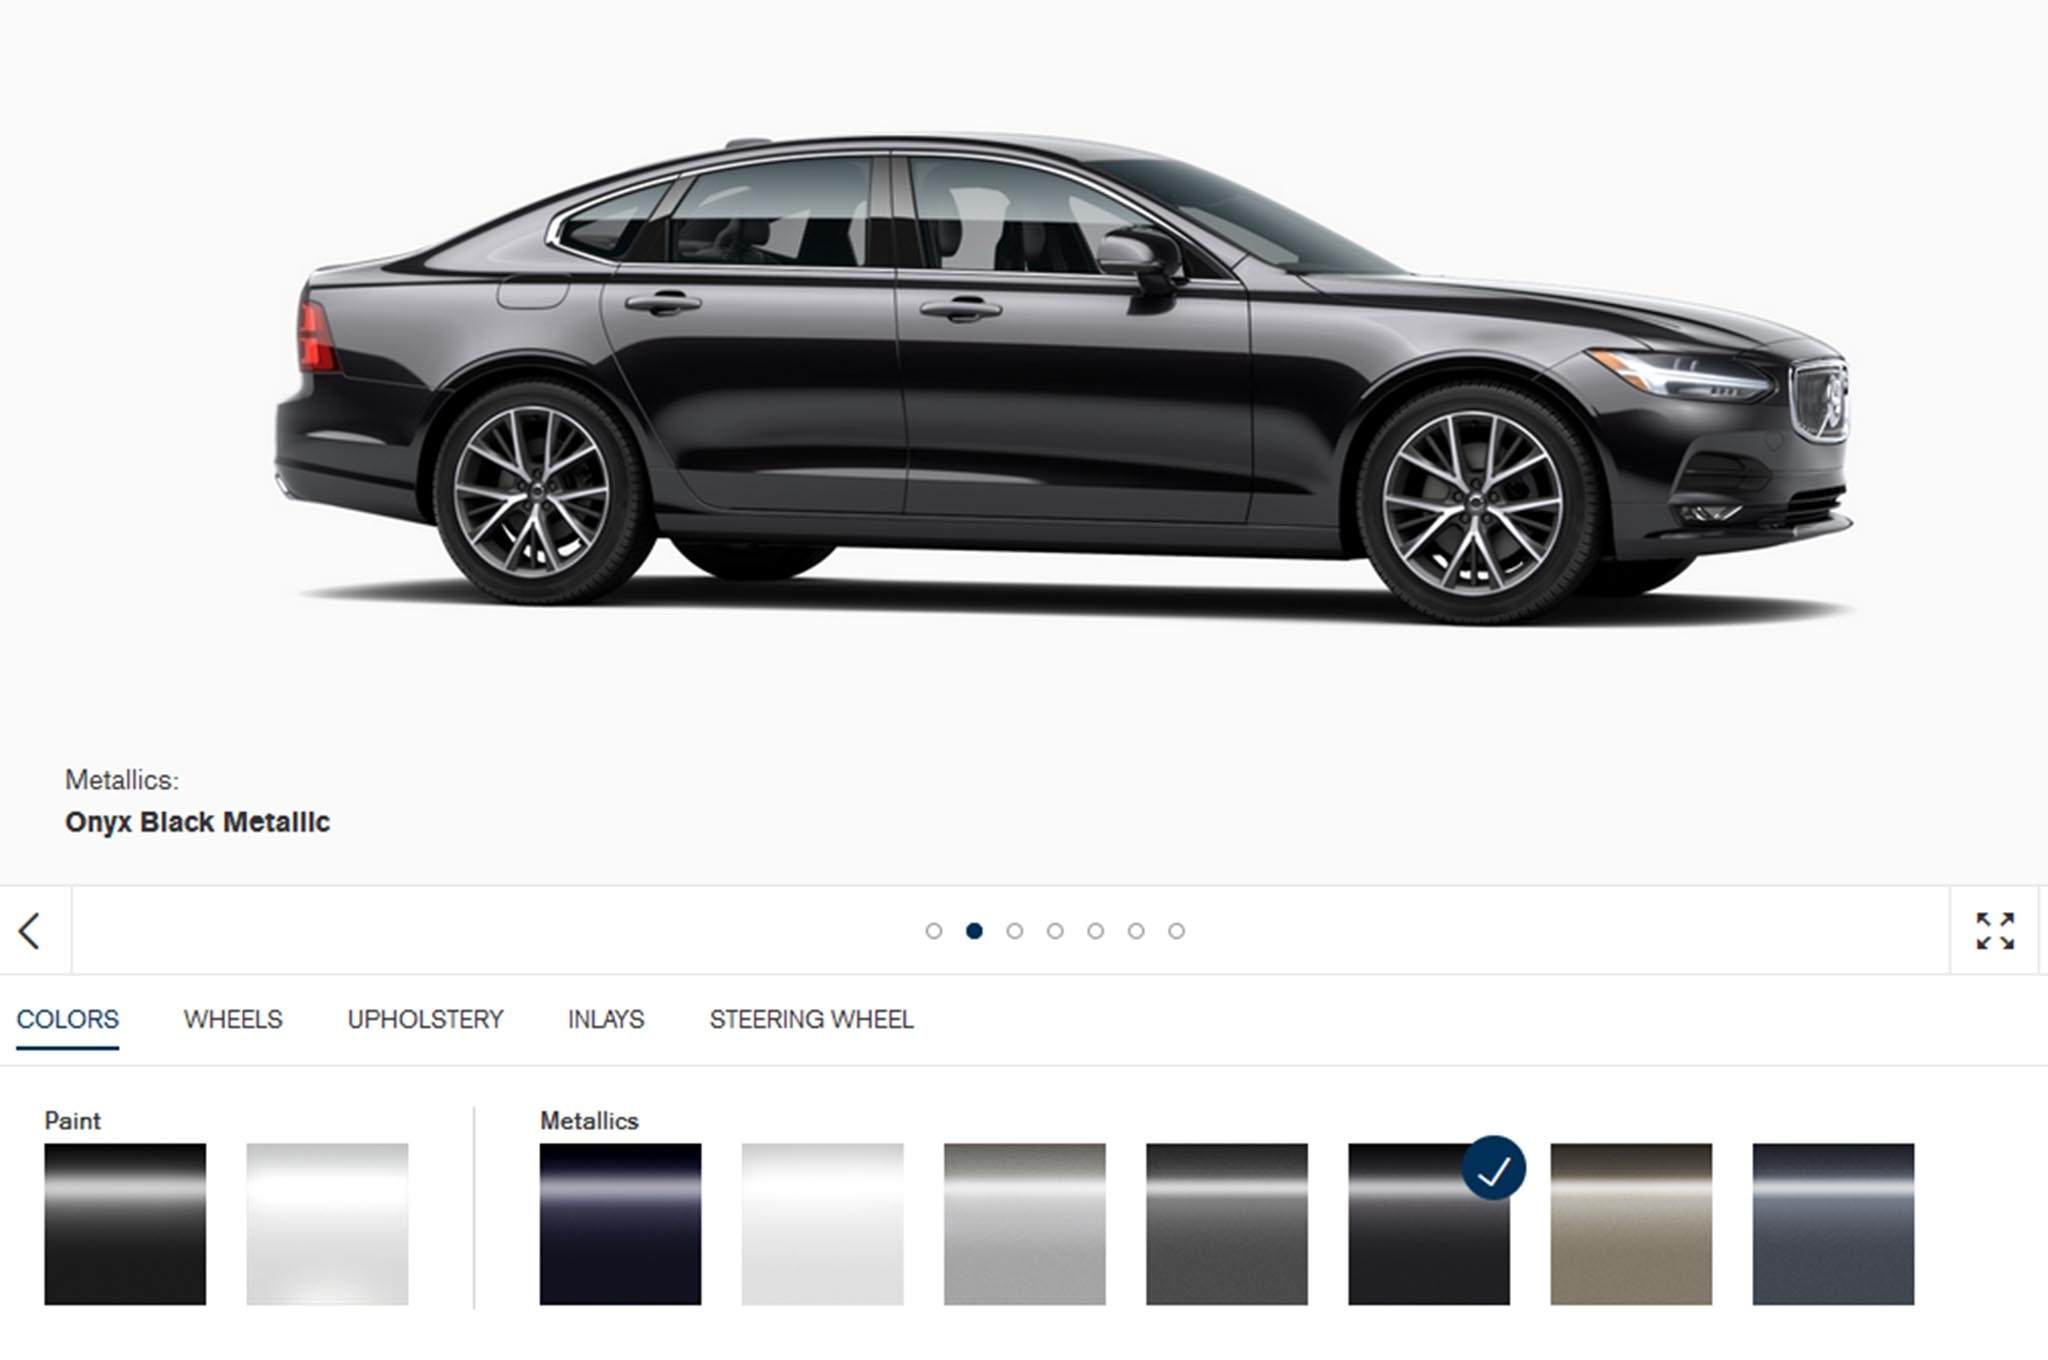 2017 Volvo S90 Build Your Own Screenshot